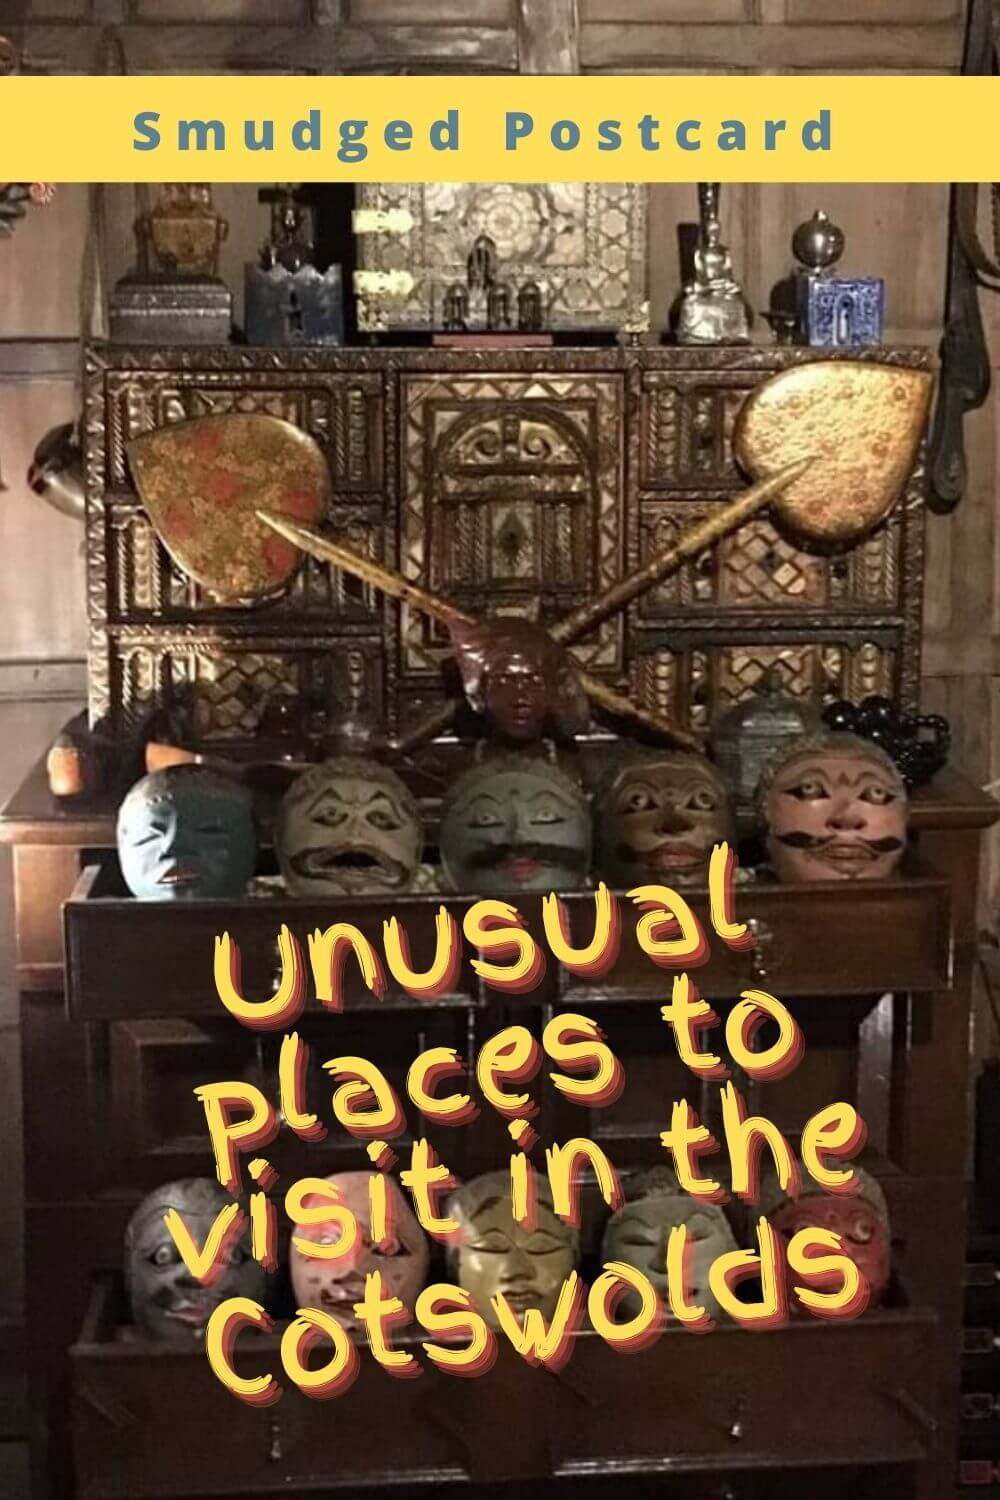 Unusual places to visit in the Cotswolds